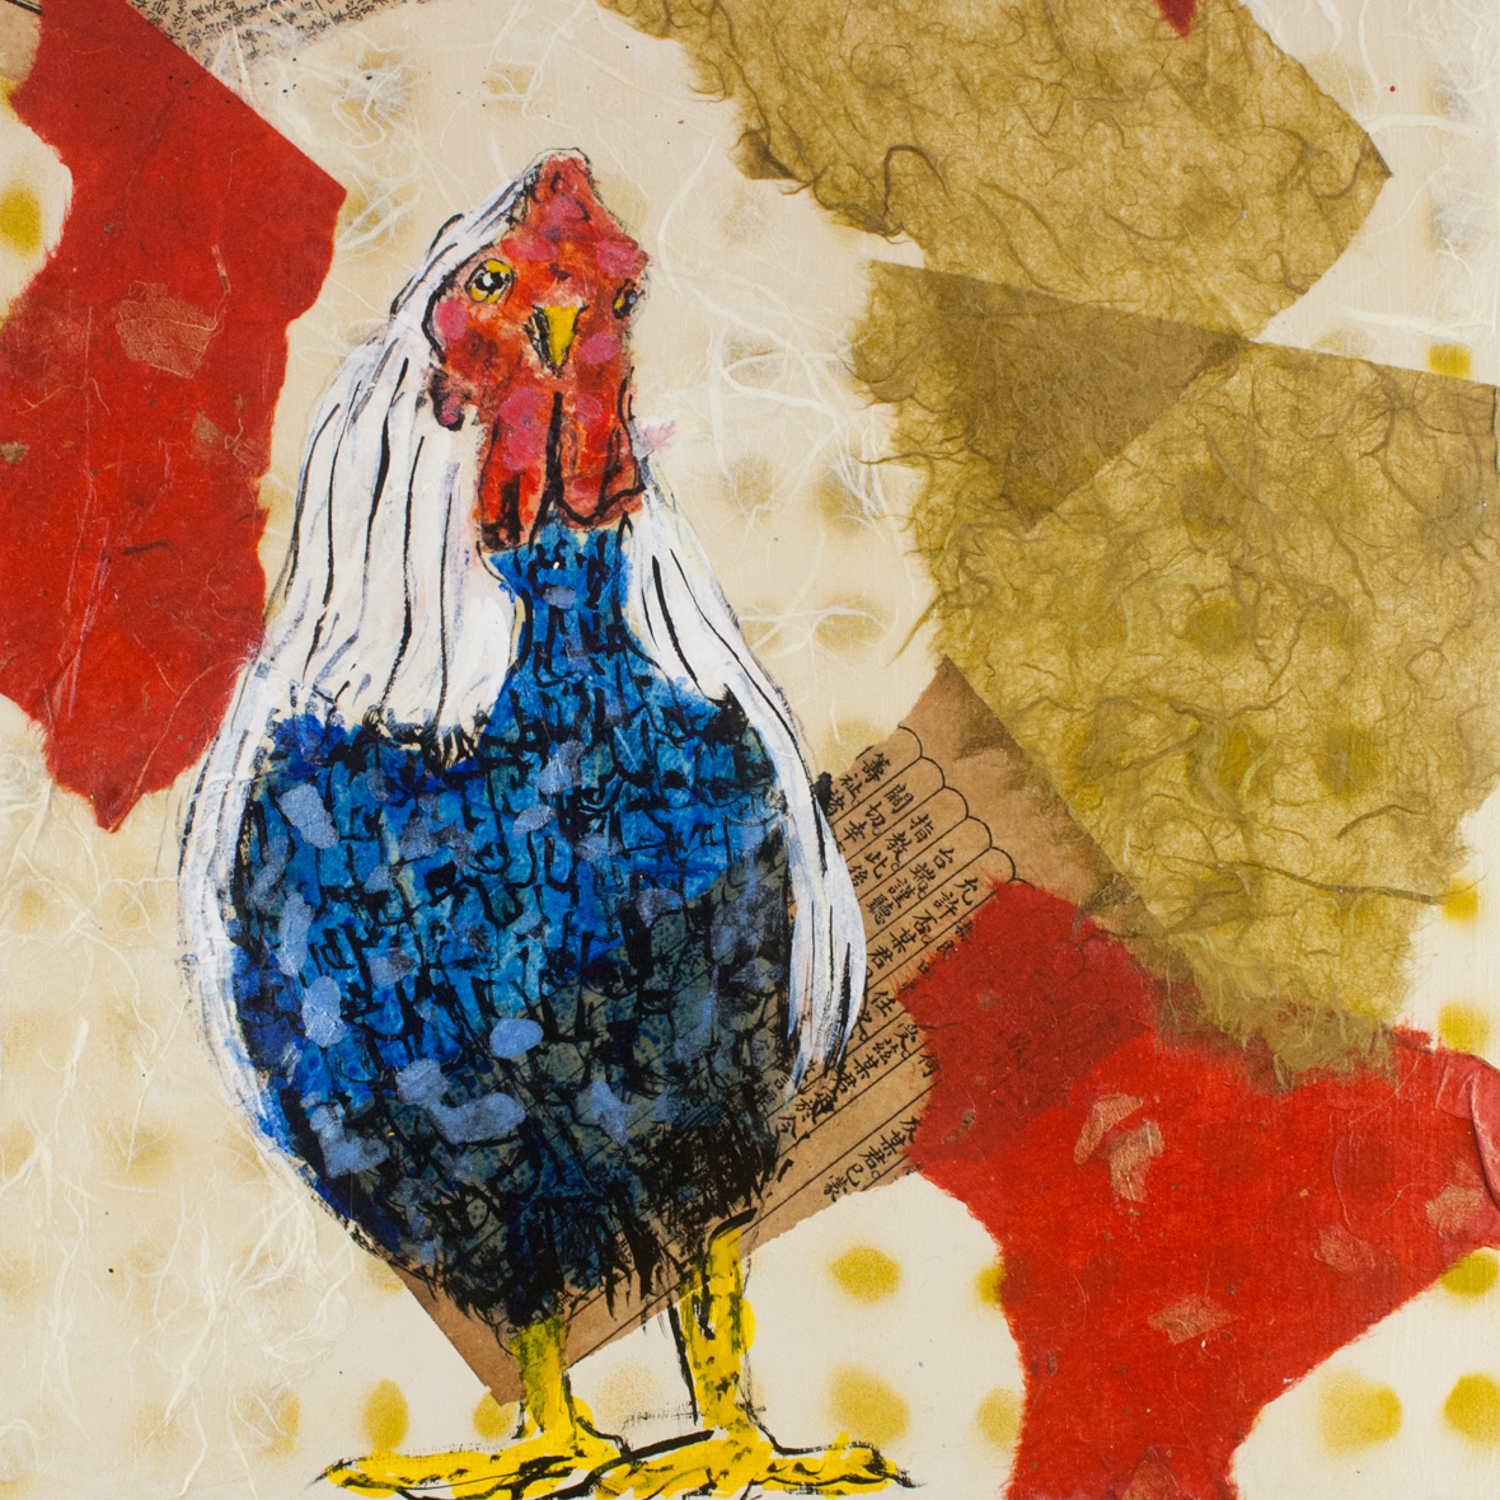 Little Roosters: Ravi20149 X 14Mixed Media on Canvas$100